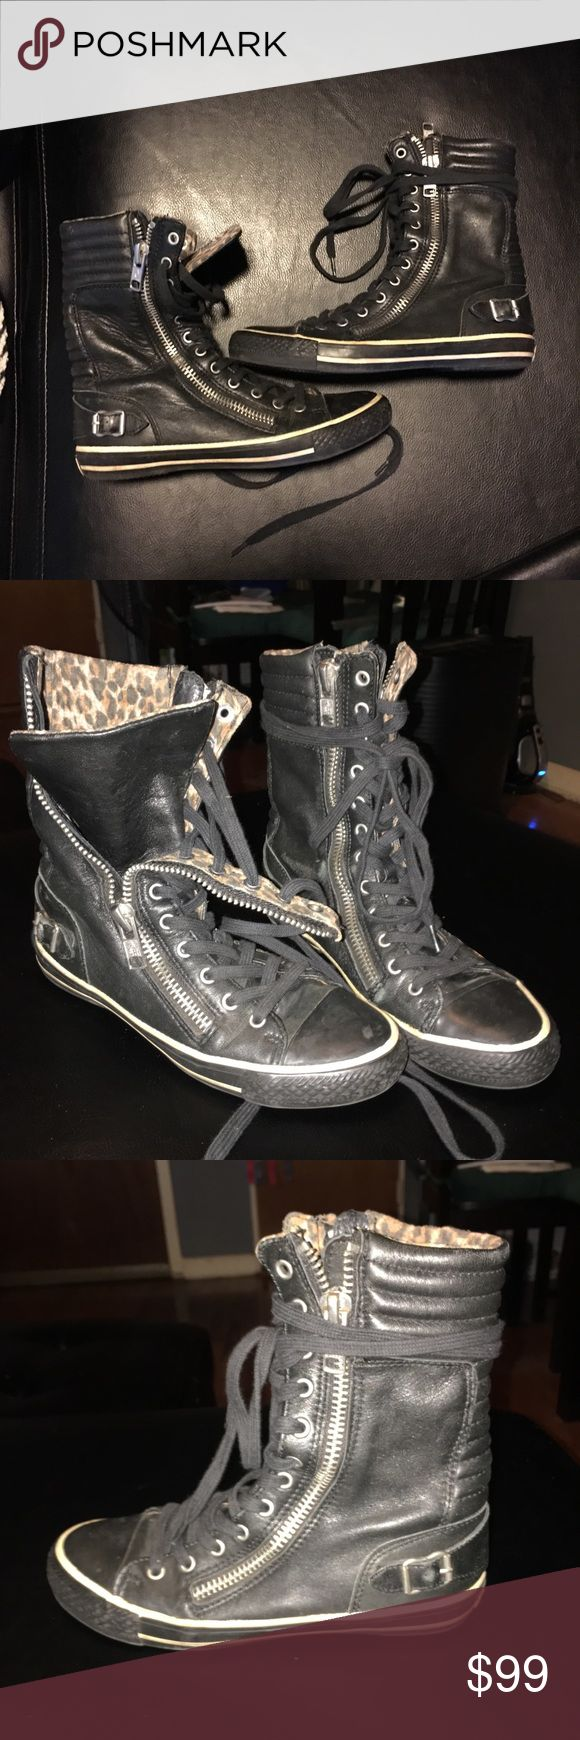 Ash Limited hightop sneakers size uk 37 USA 7 Ash limited hightop black leather. Only worn a few times great condition. Inside and outside zippers and stylish and hip. Leopard lining. Ash Shoes Sneakers